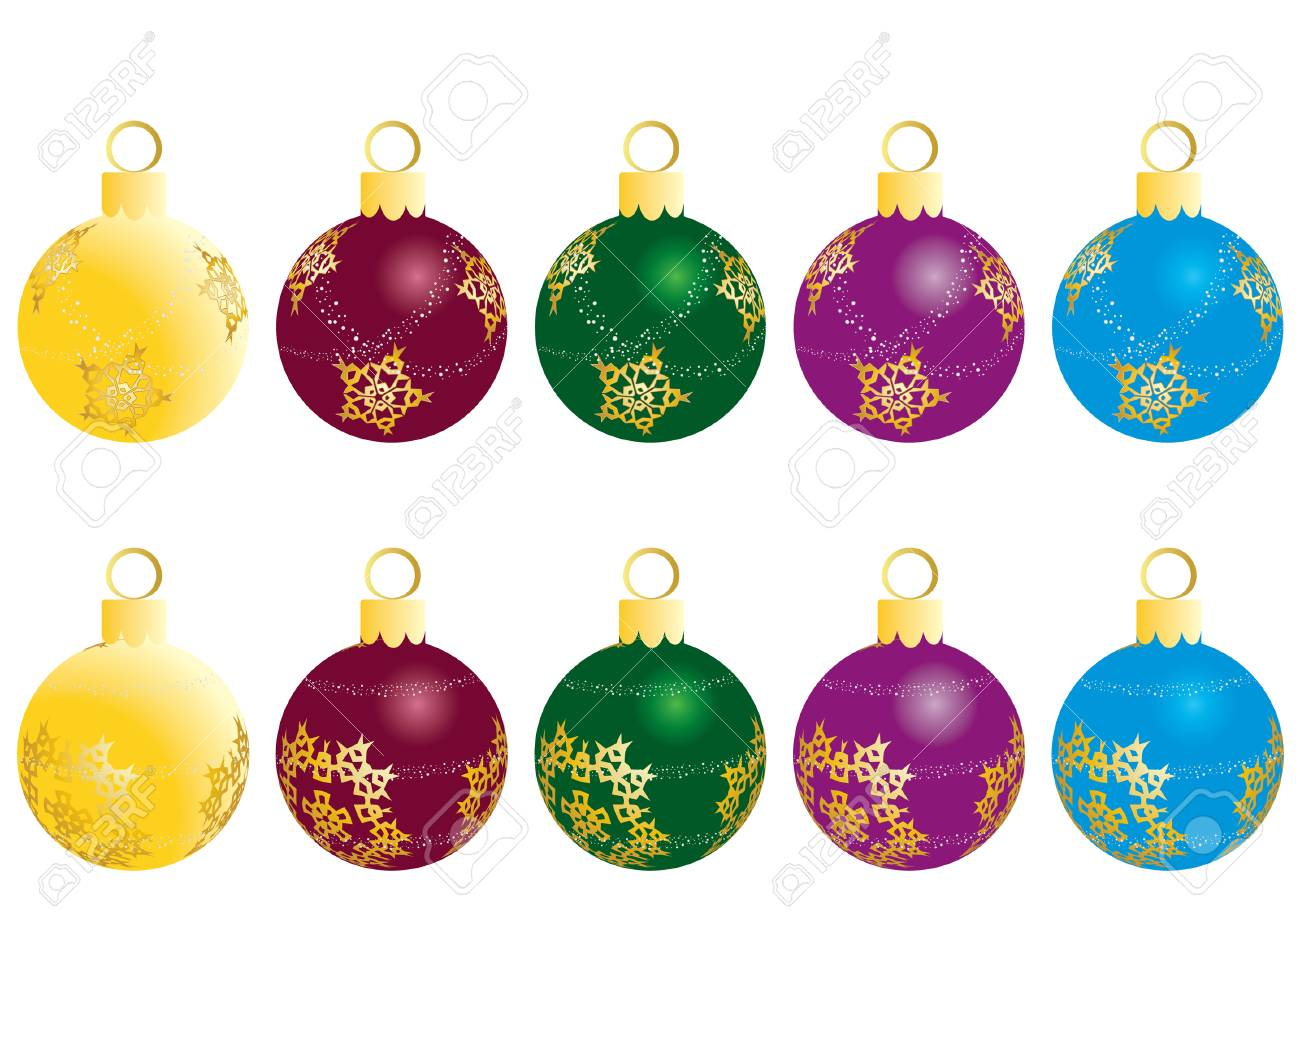 Set of Christmas (New Year) balls for design use. Vector illustration. Stock Vector - 3868197